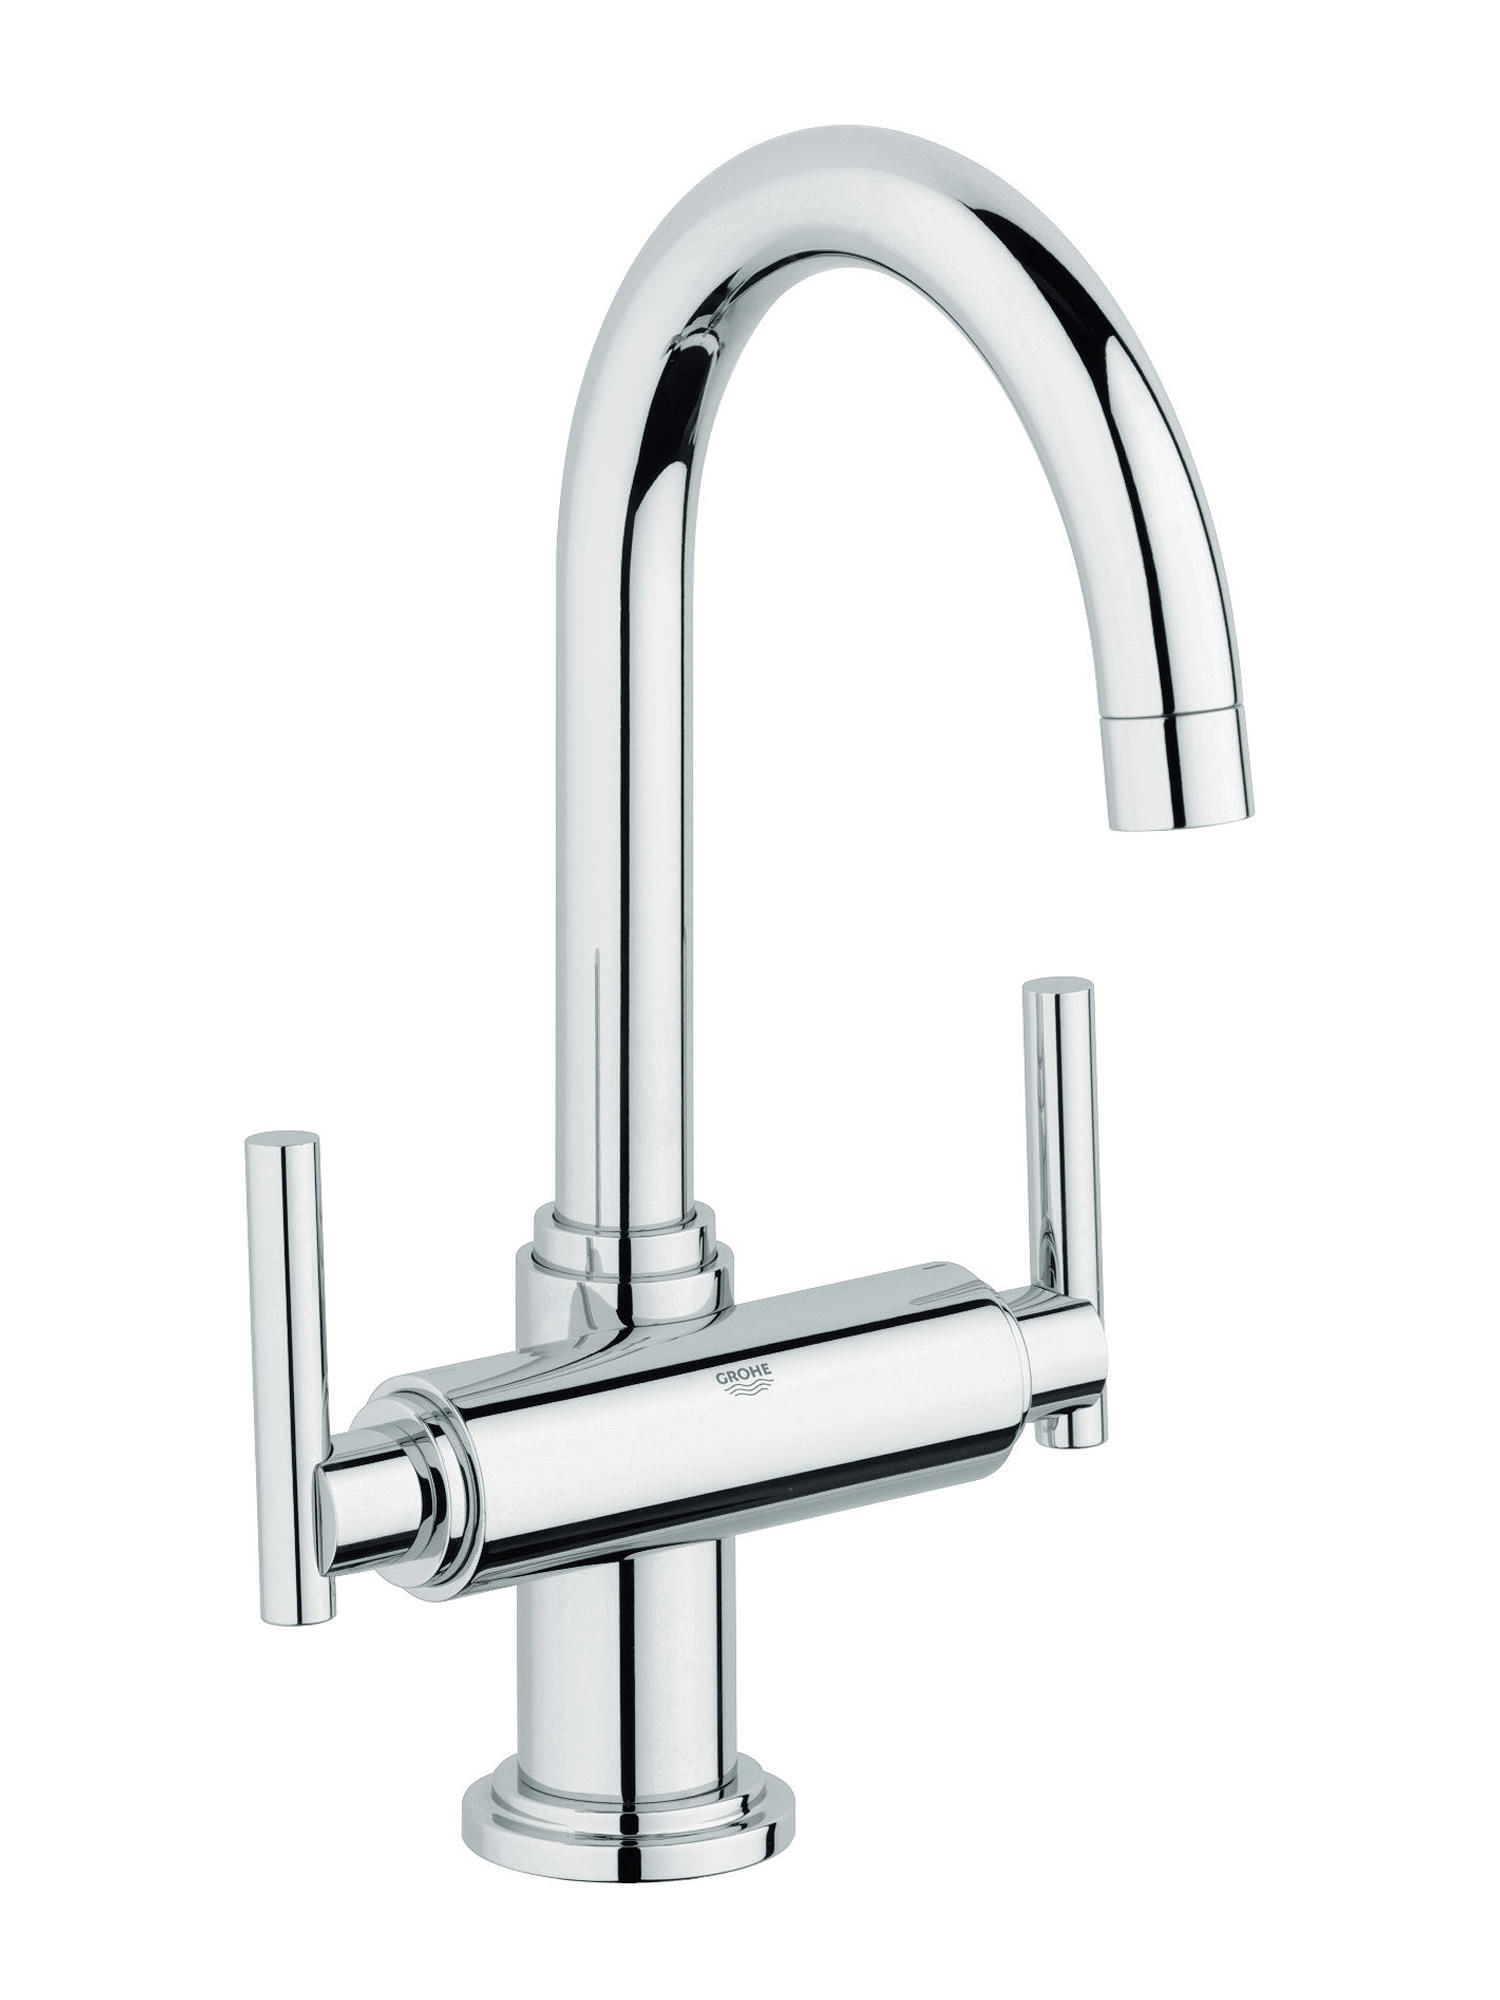 Grohe Atrio Jota Basin Mixer Tap With Pop Up Waste